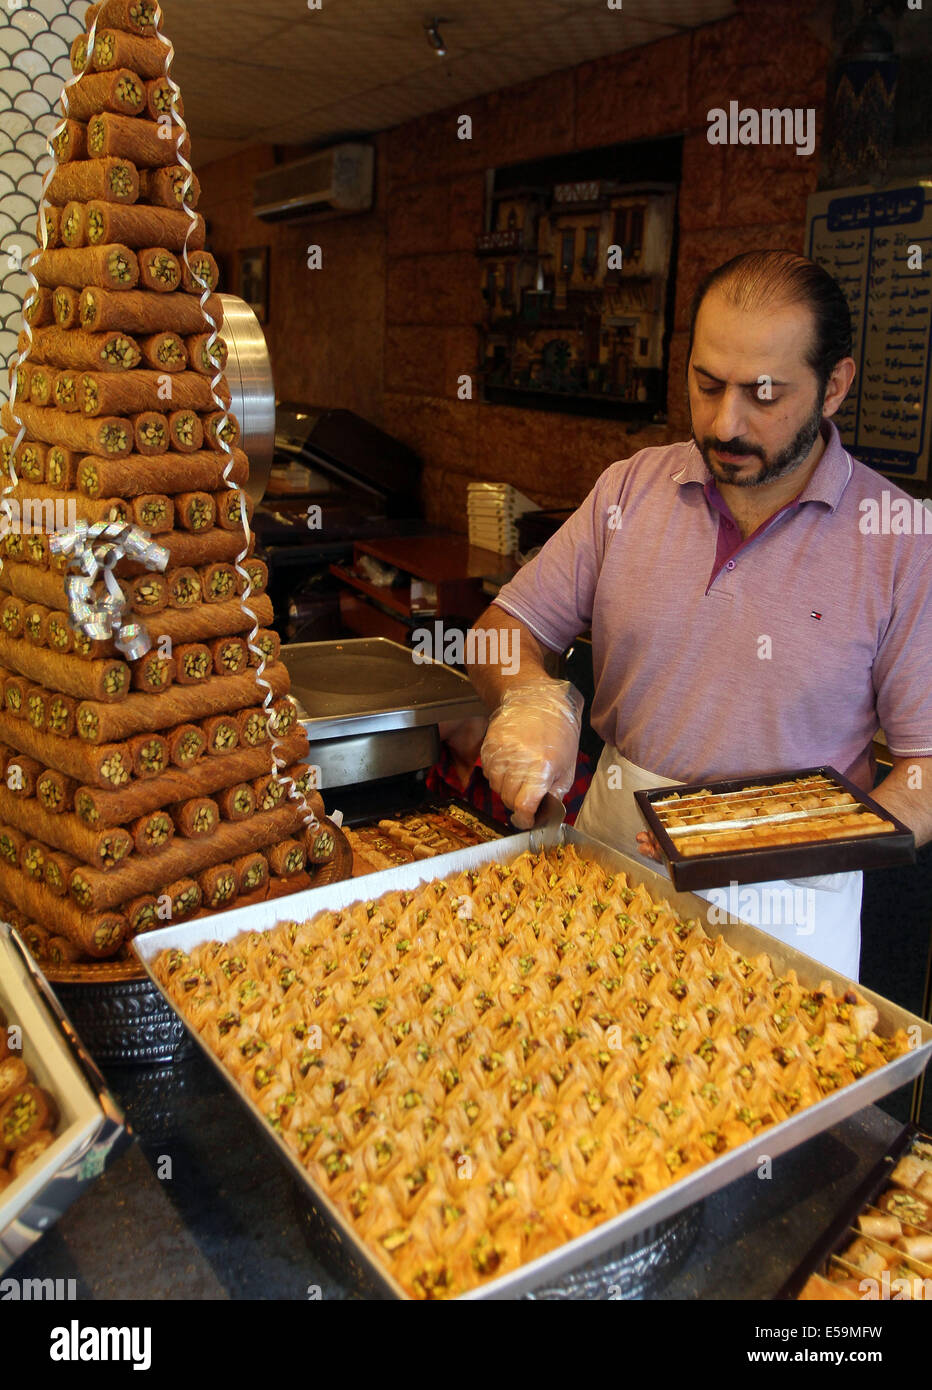 Must see Syria Eid Al-Fitr Food - damascus-syria-24th-july-2014-a-syrian-man-makes-arabic-sweets-at-E59MFW  You Should Have_26939 .jpg